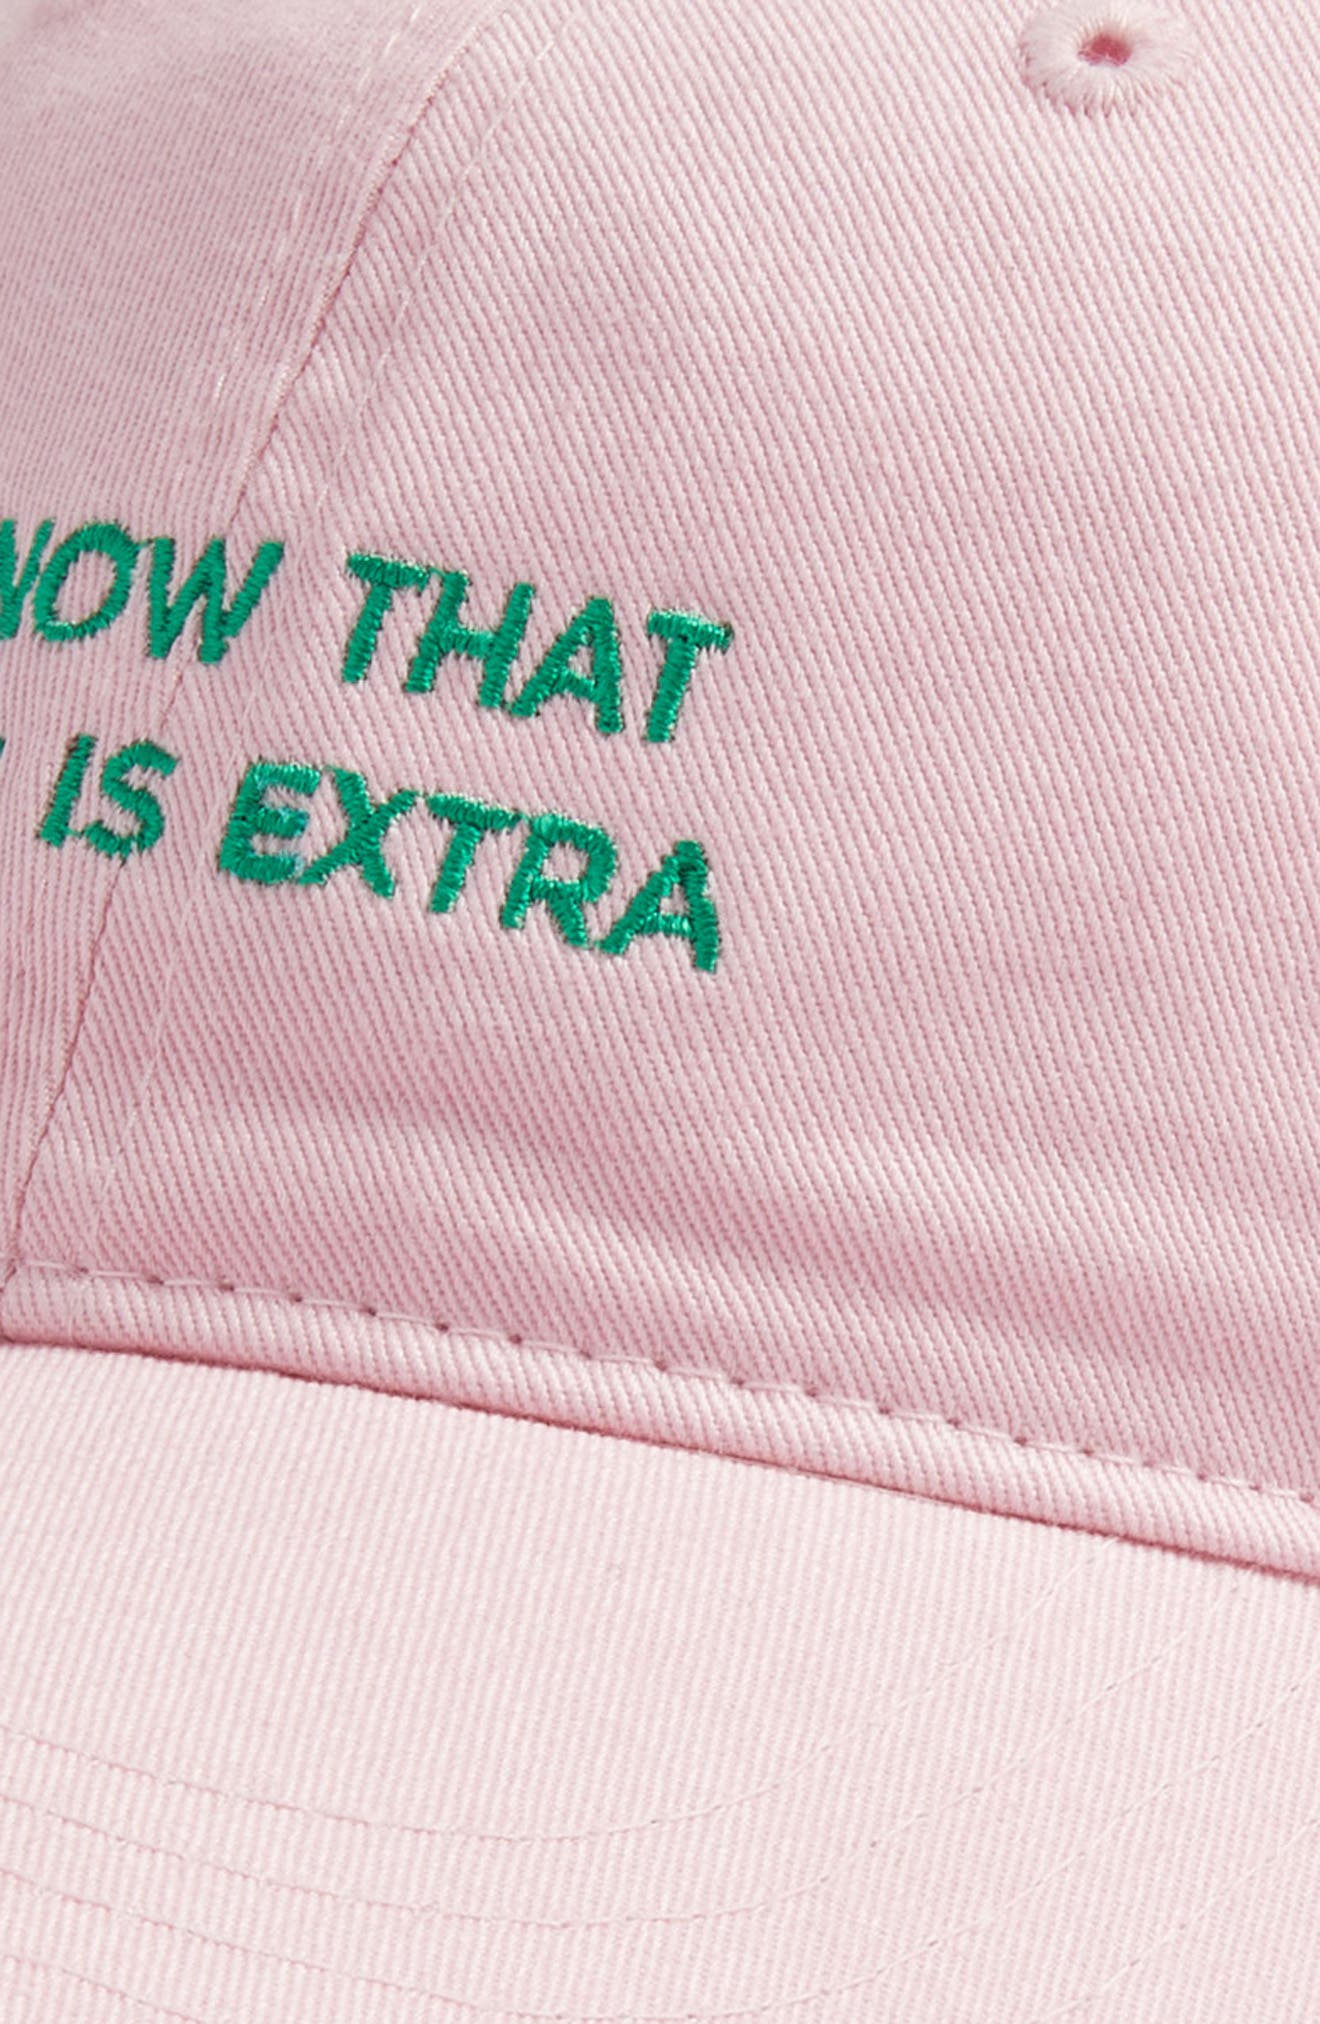 'I Know That Guac Is Extra' Cap,                             Alternate thumbnail 3, color,